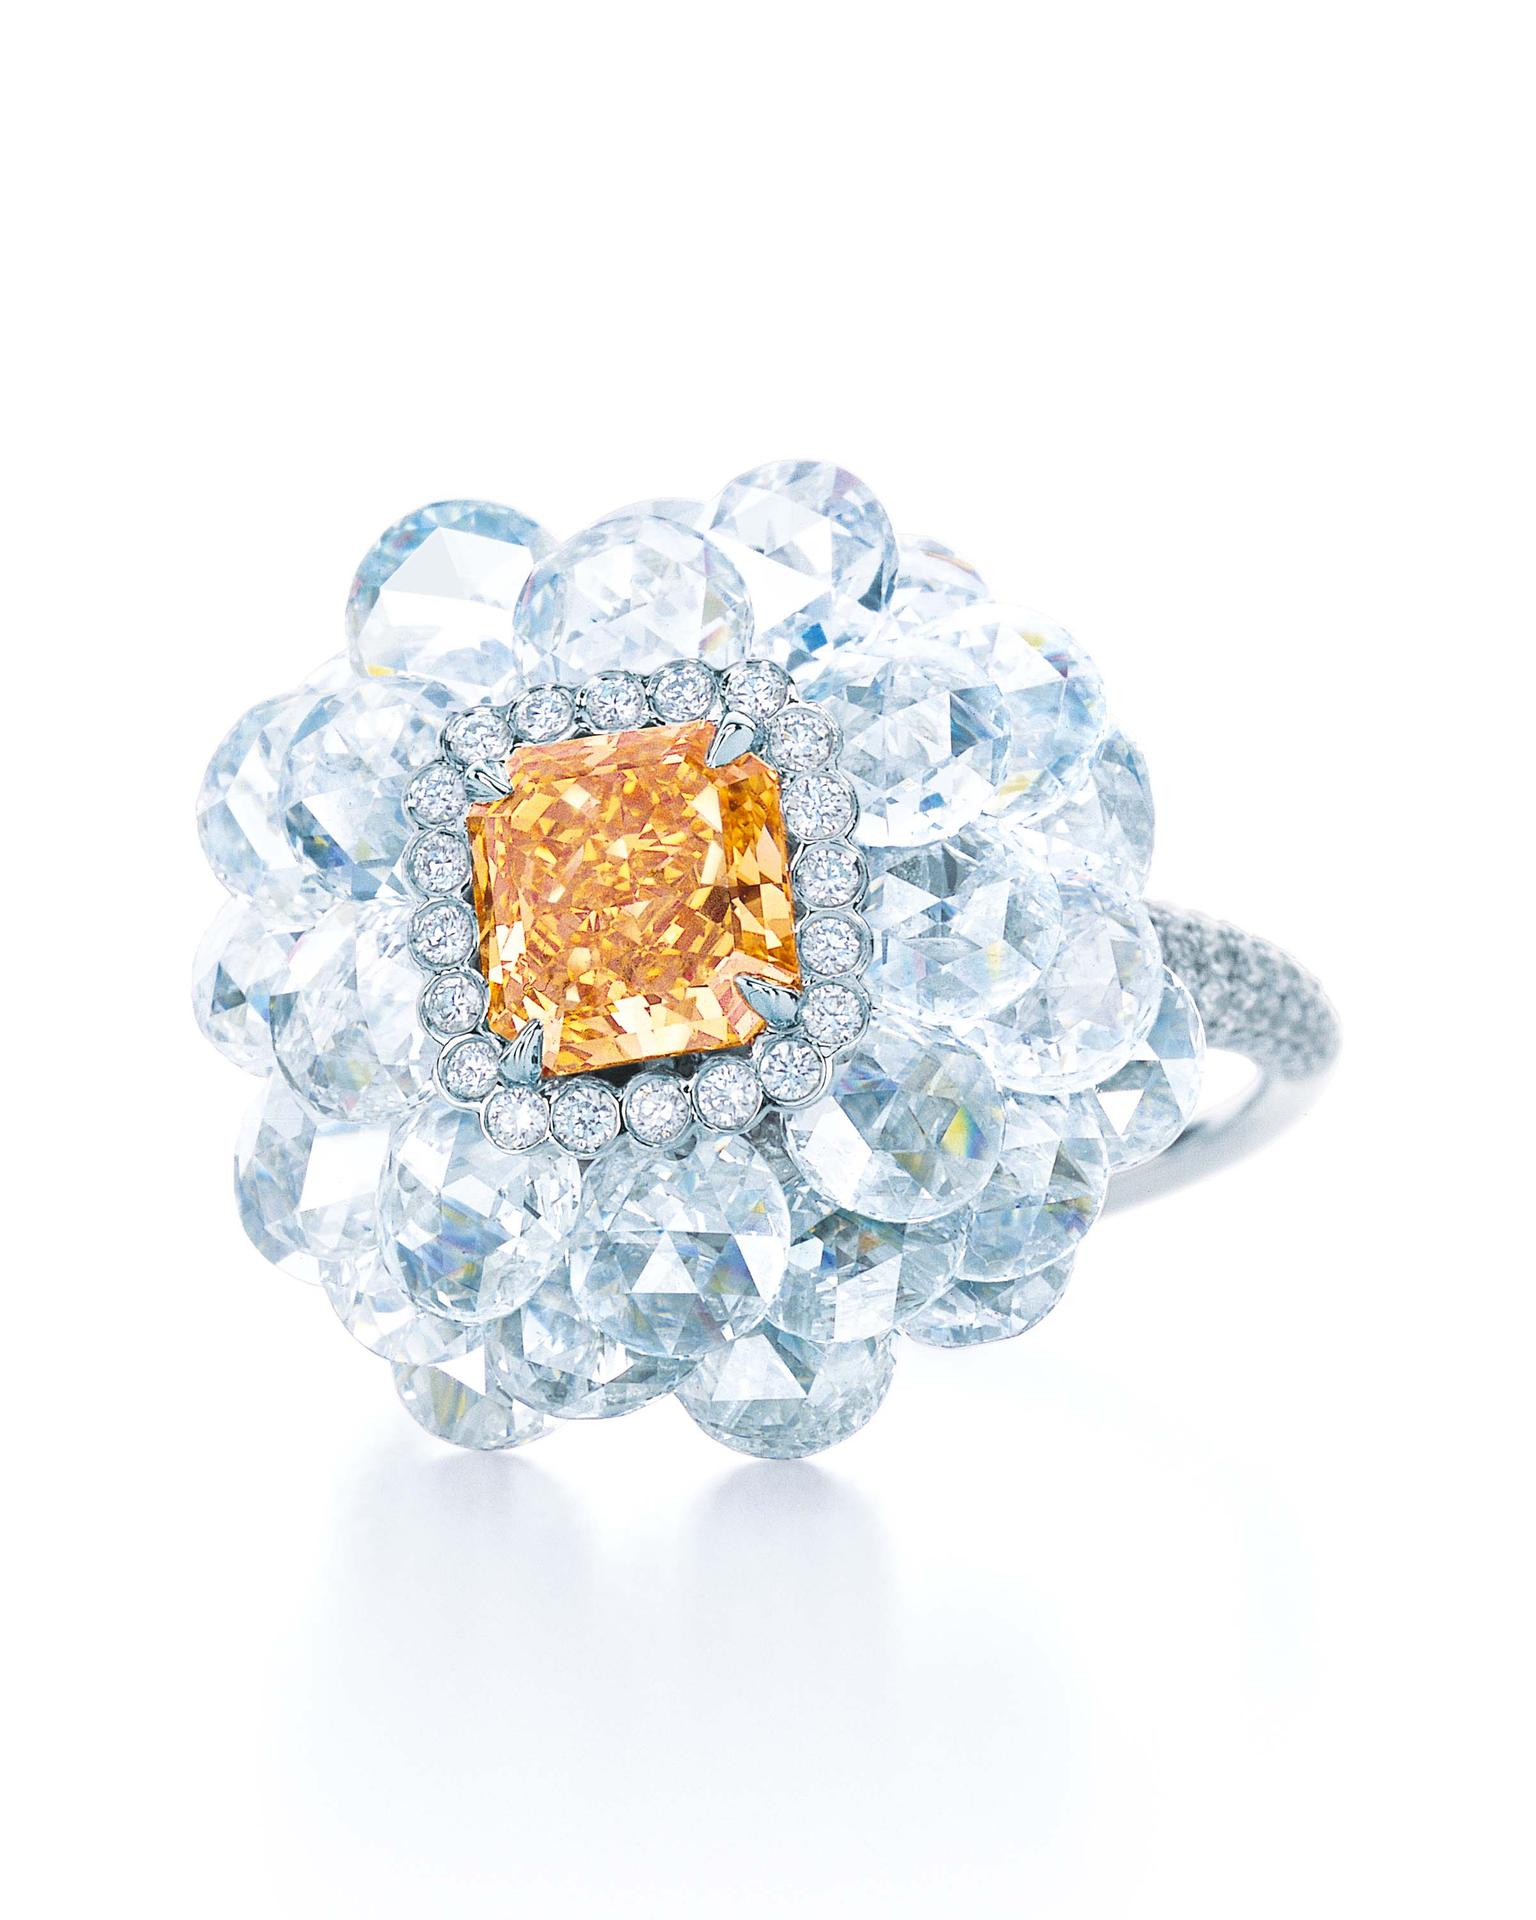 Tiffany & Co. Blue Book Collection Fancy Intense yellow orange diamond ring set in platinum